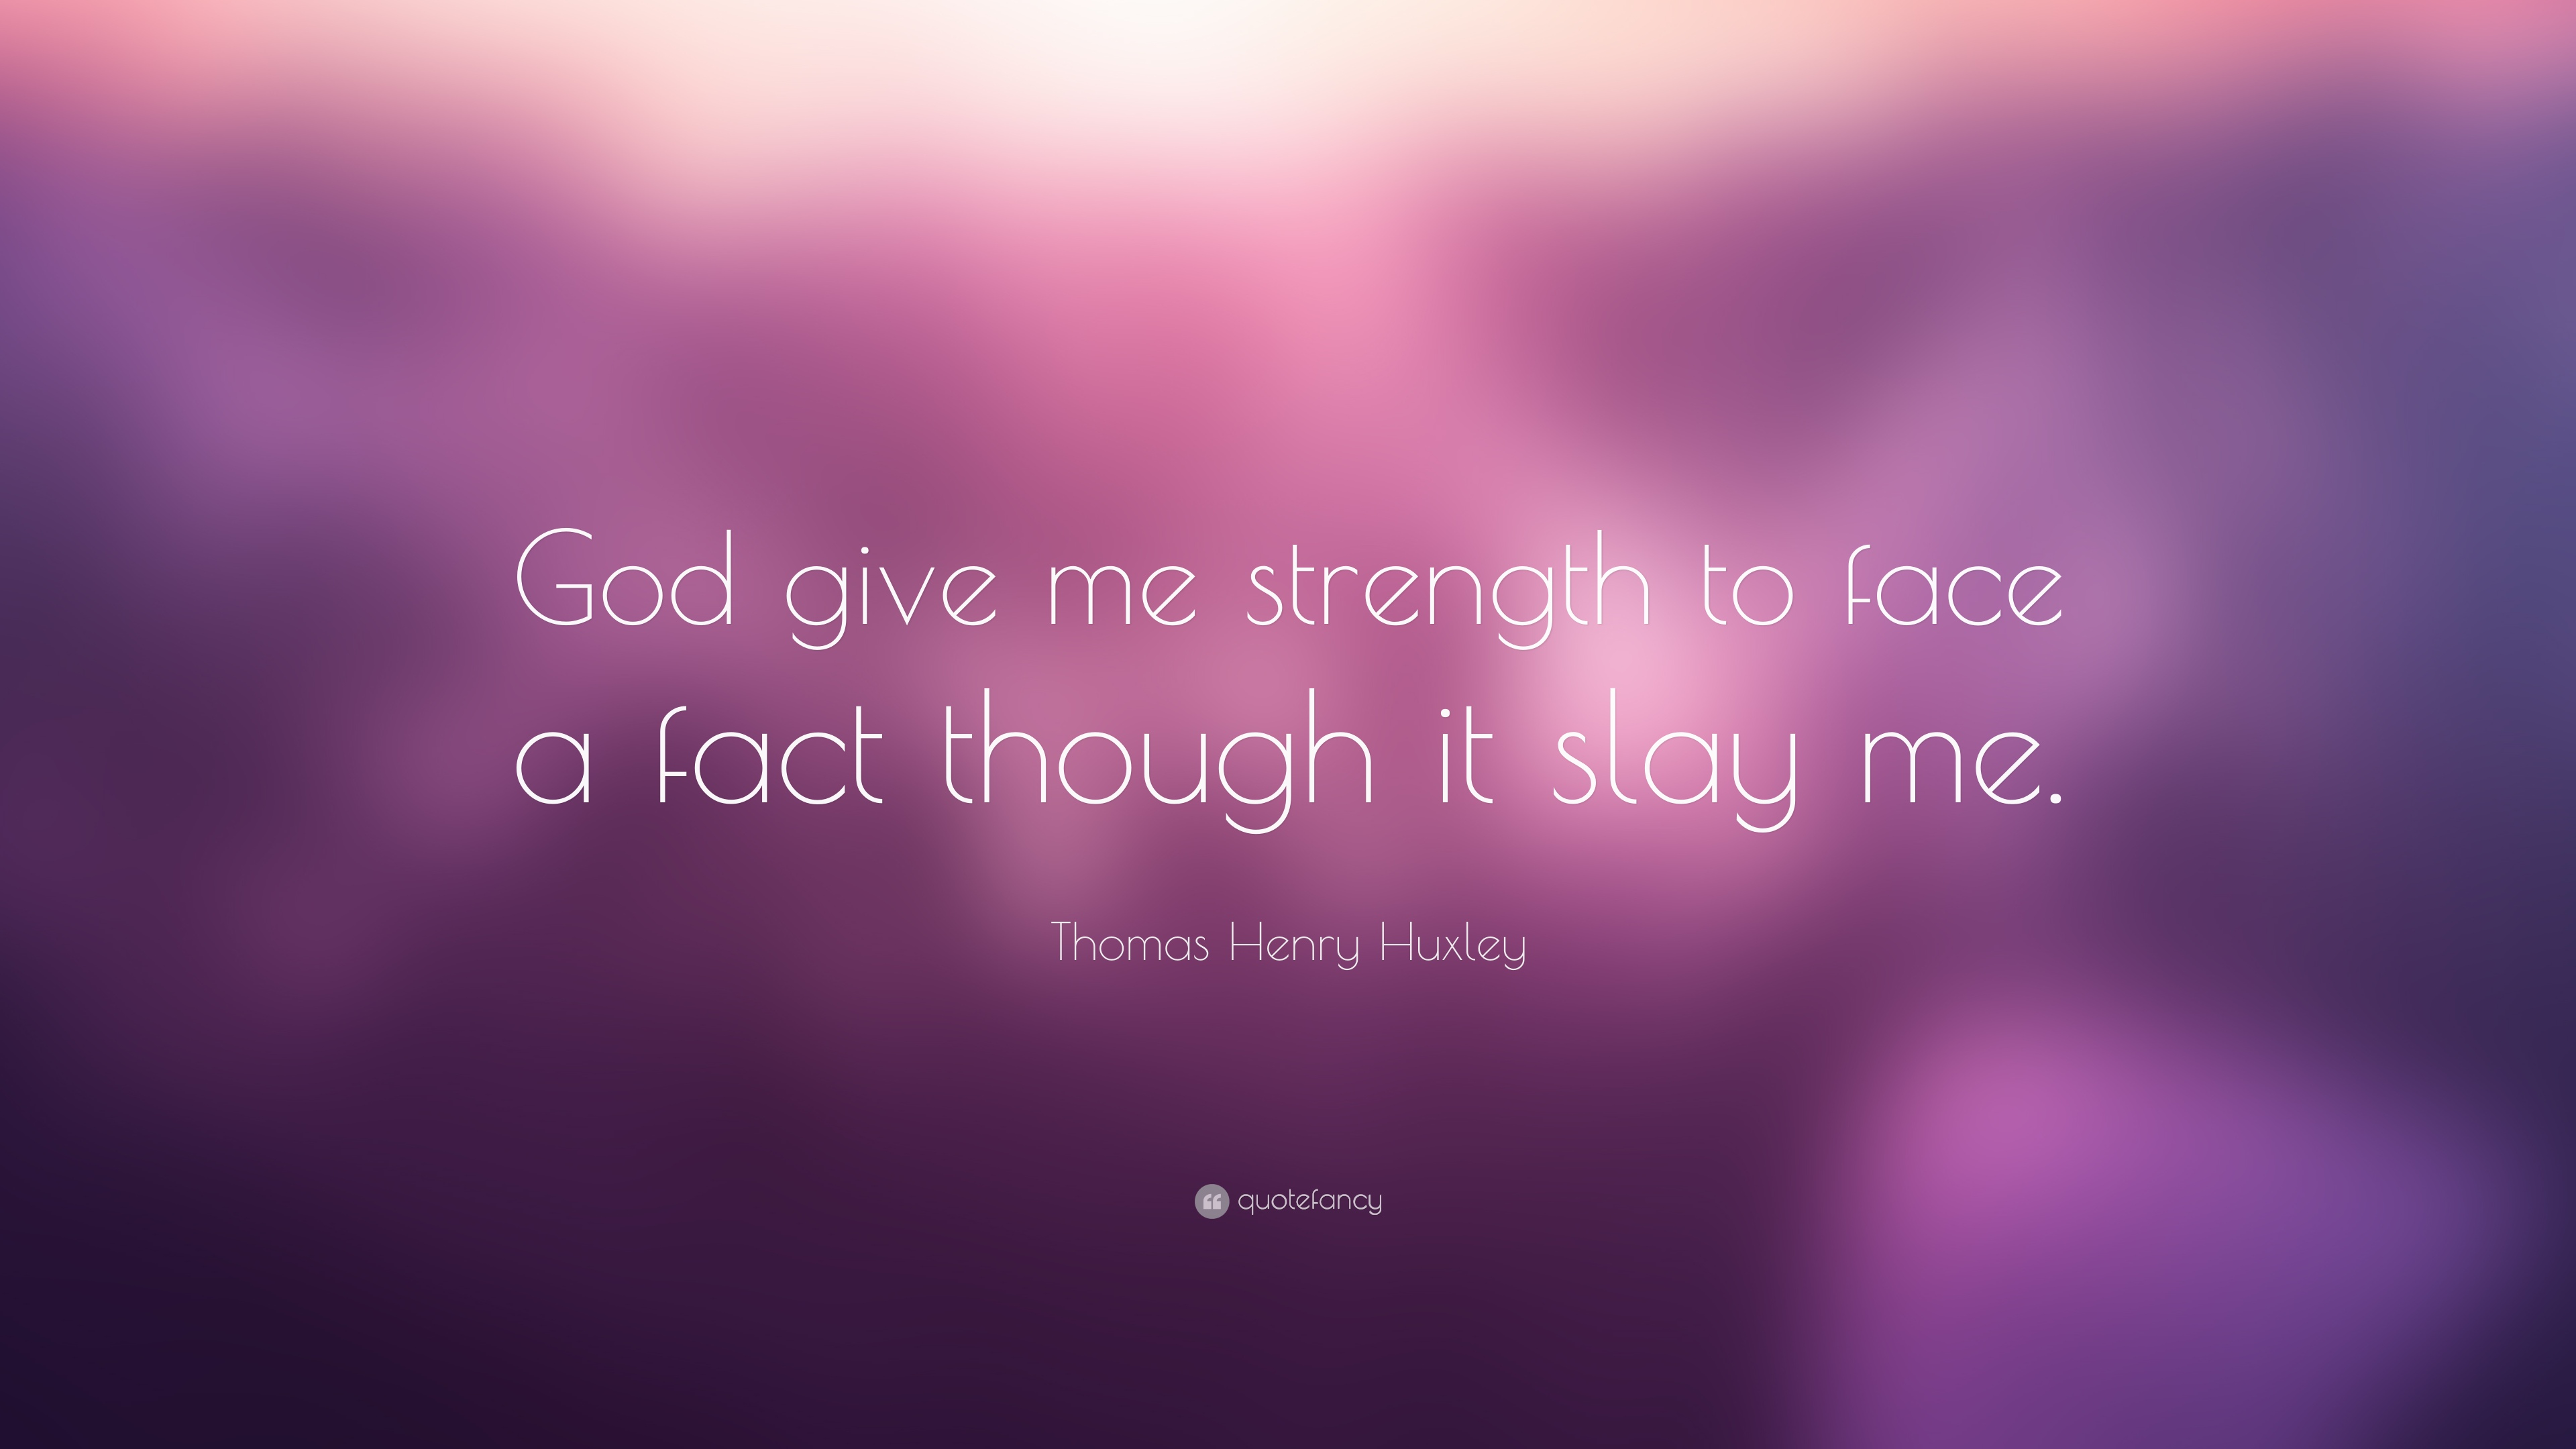 Thomas henry huxley quote god give me strength to face a fact though it